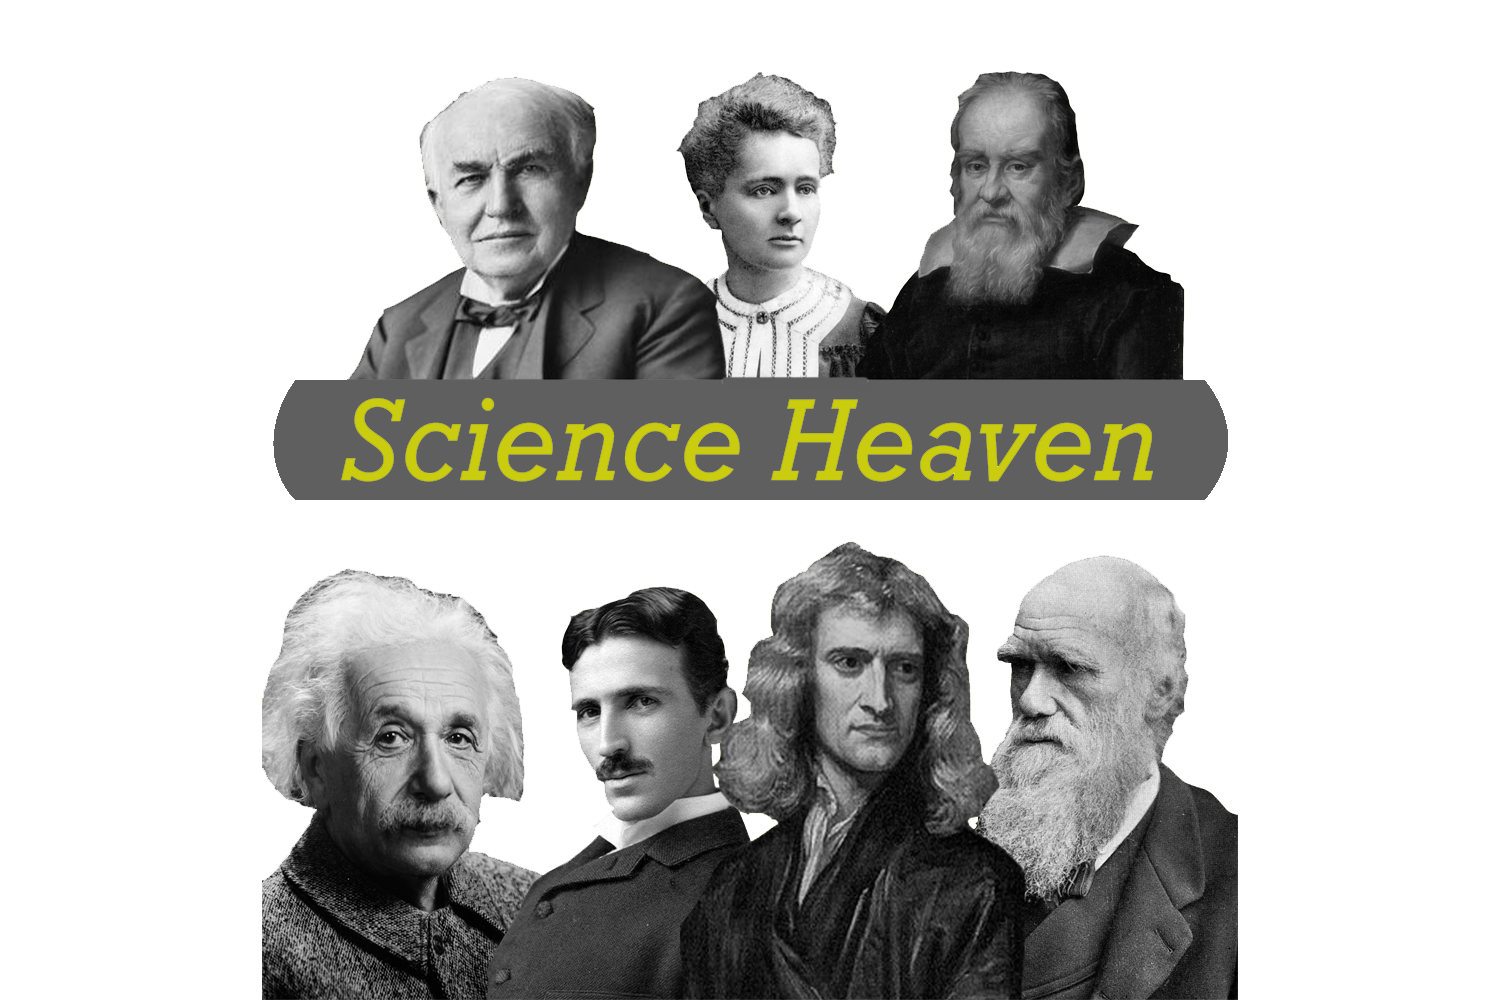 Science Heaven